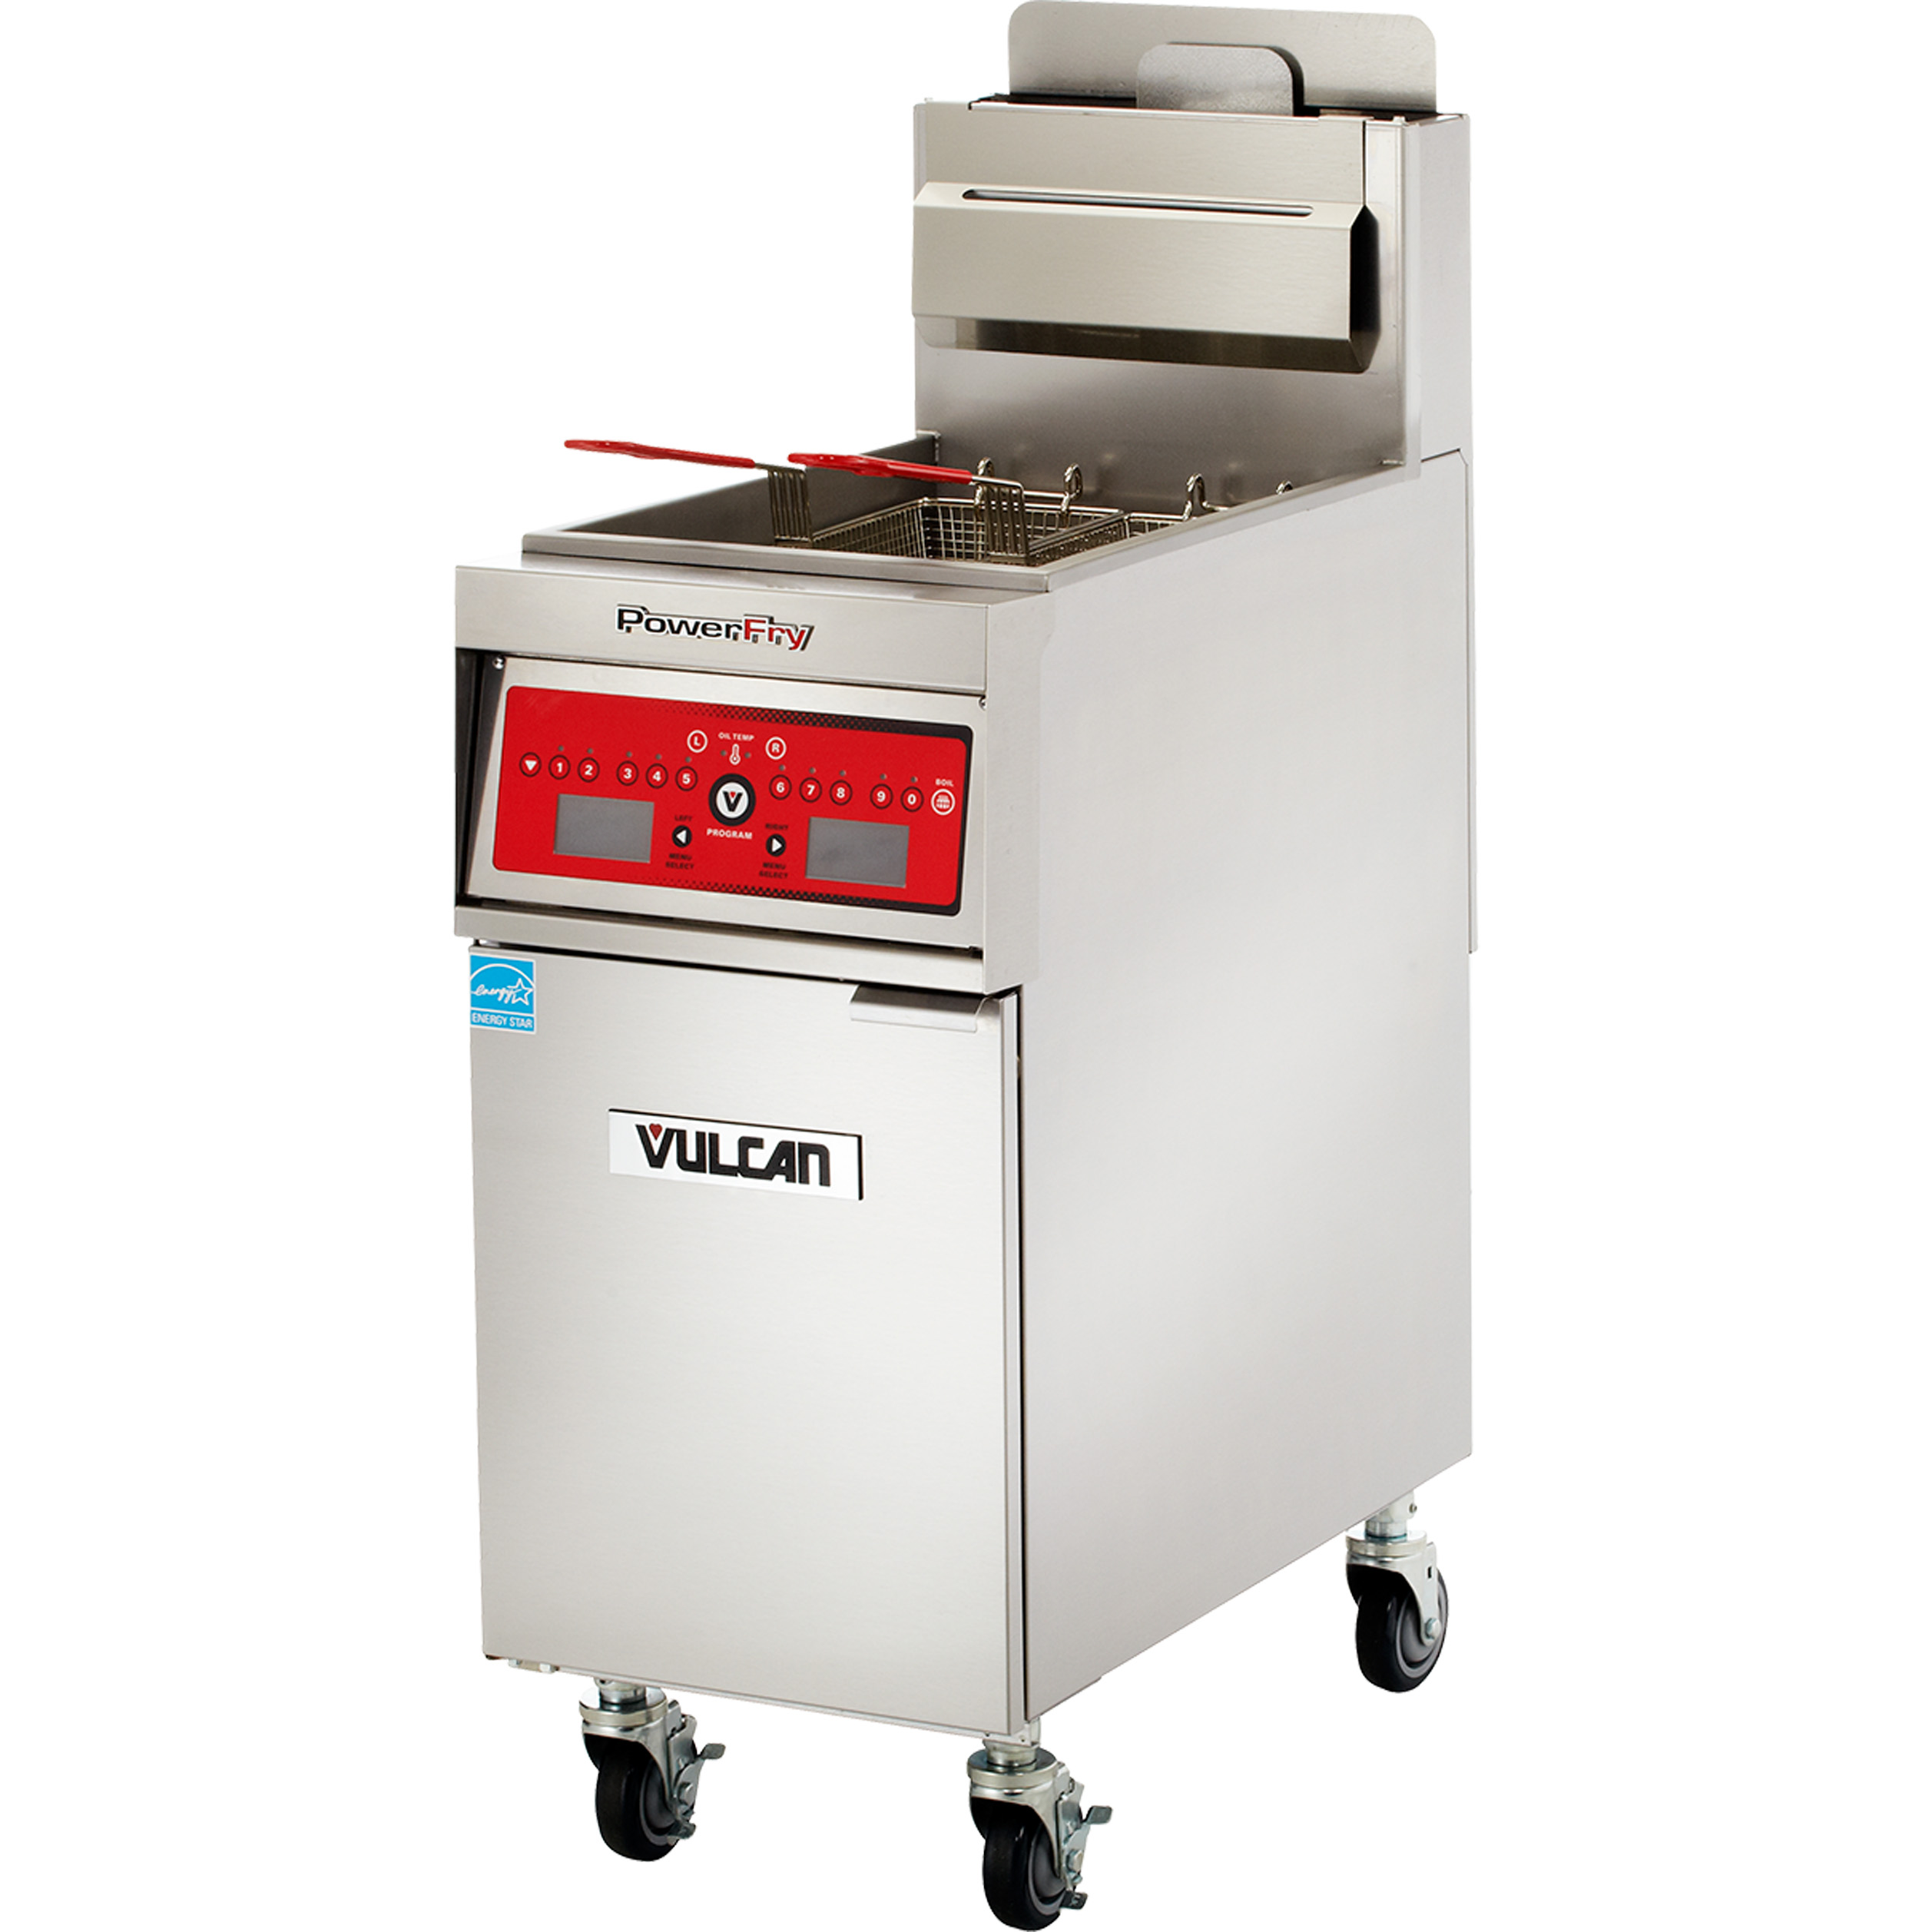 Vulcan 1VK45AF fryer, gas, floor model, full pot